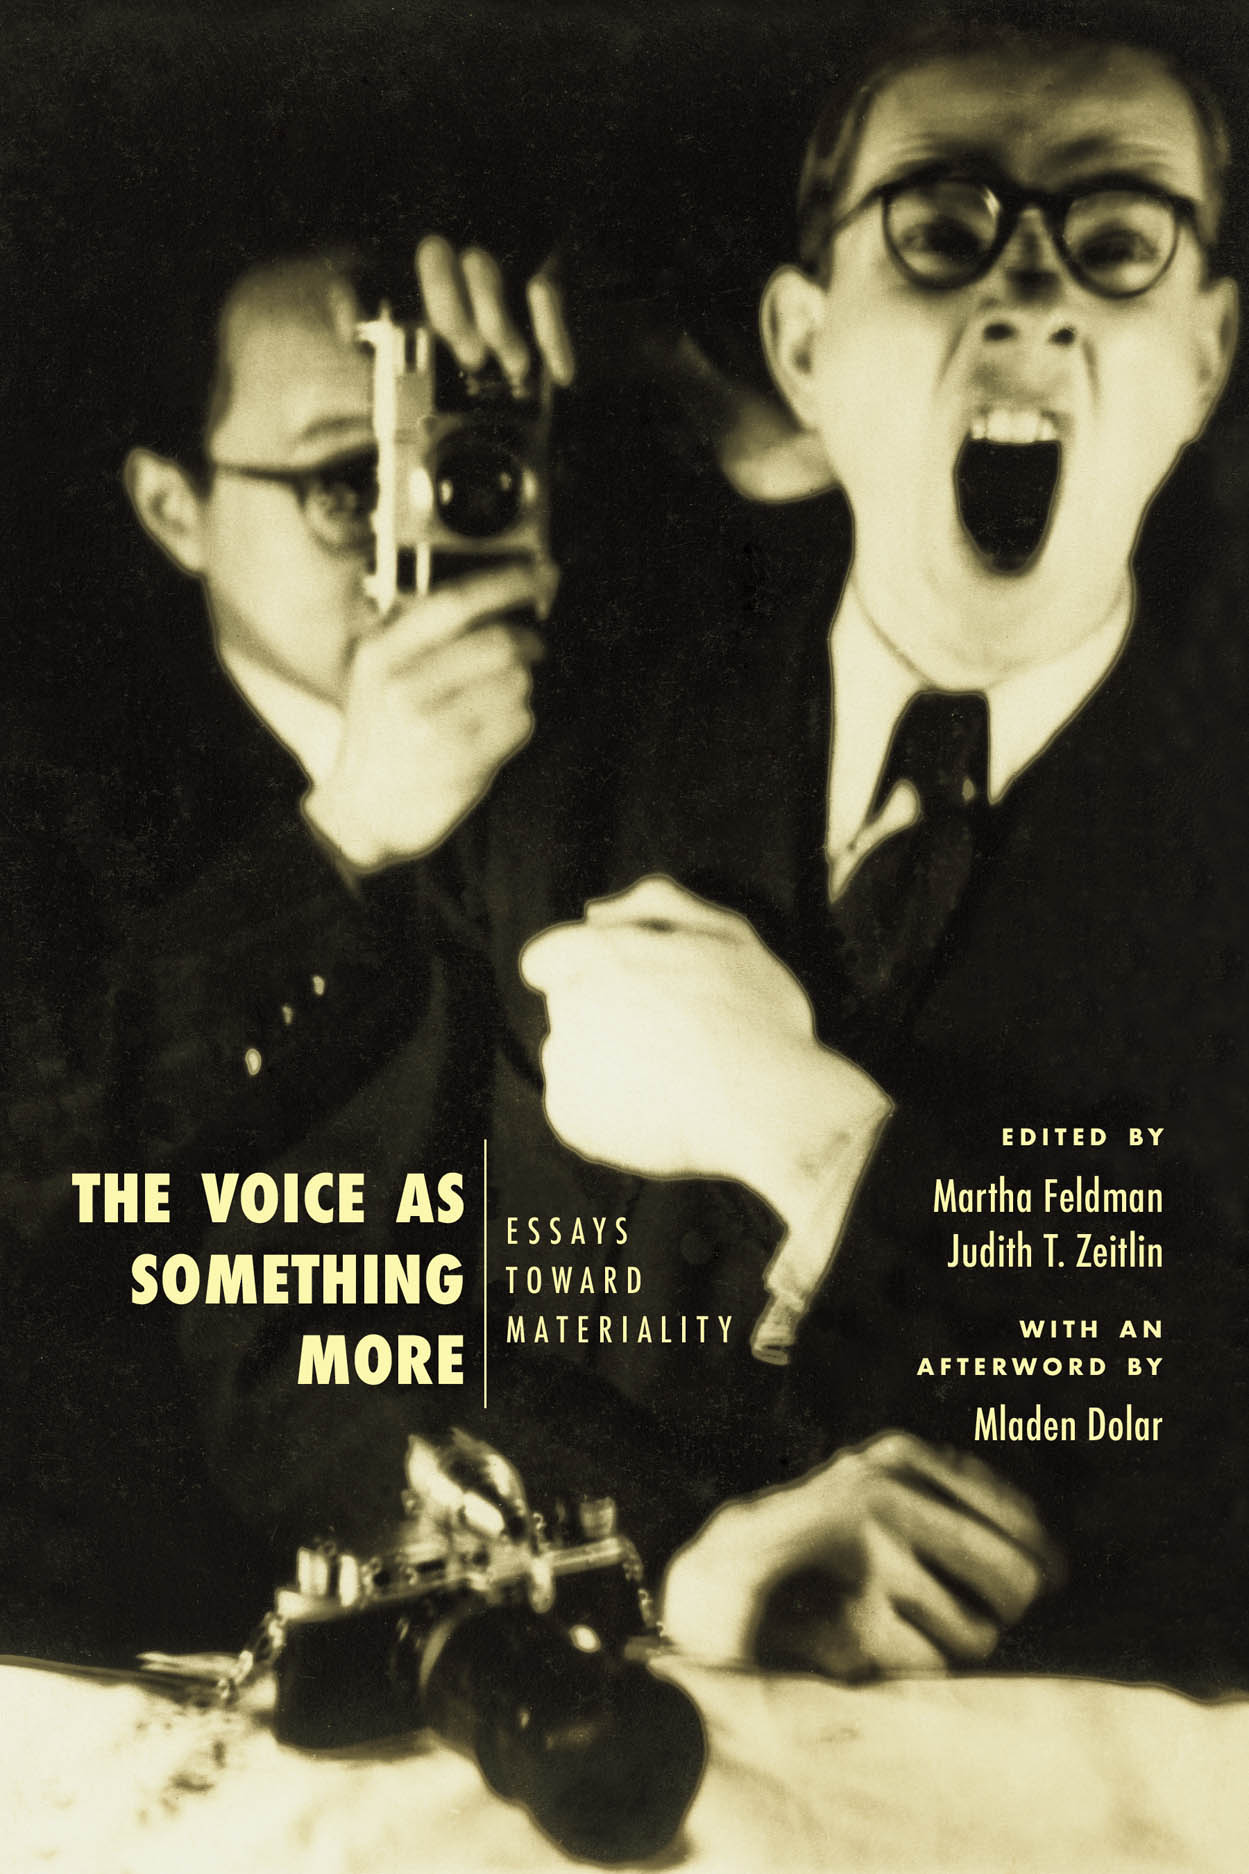 The Voice as Something More: Essays toward Materiality